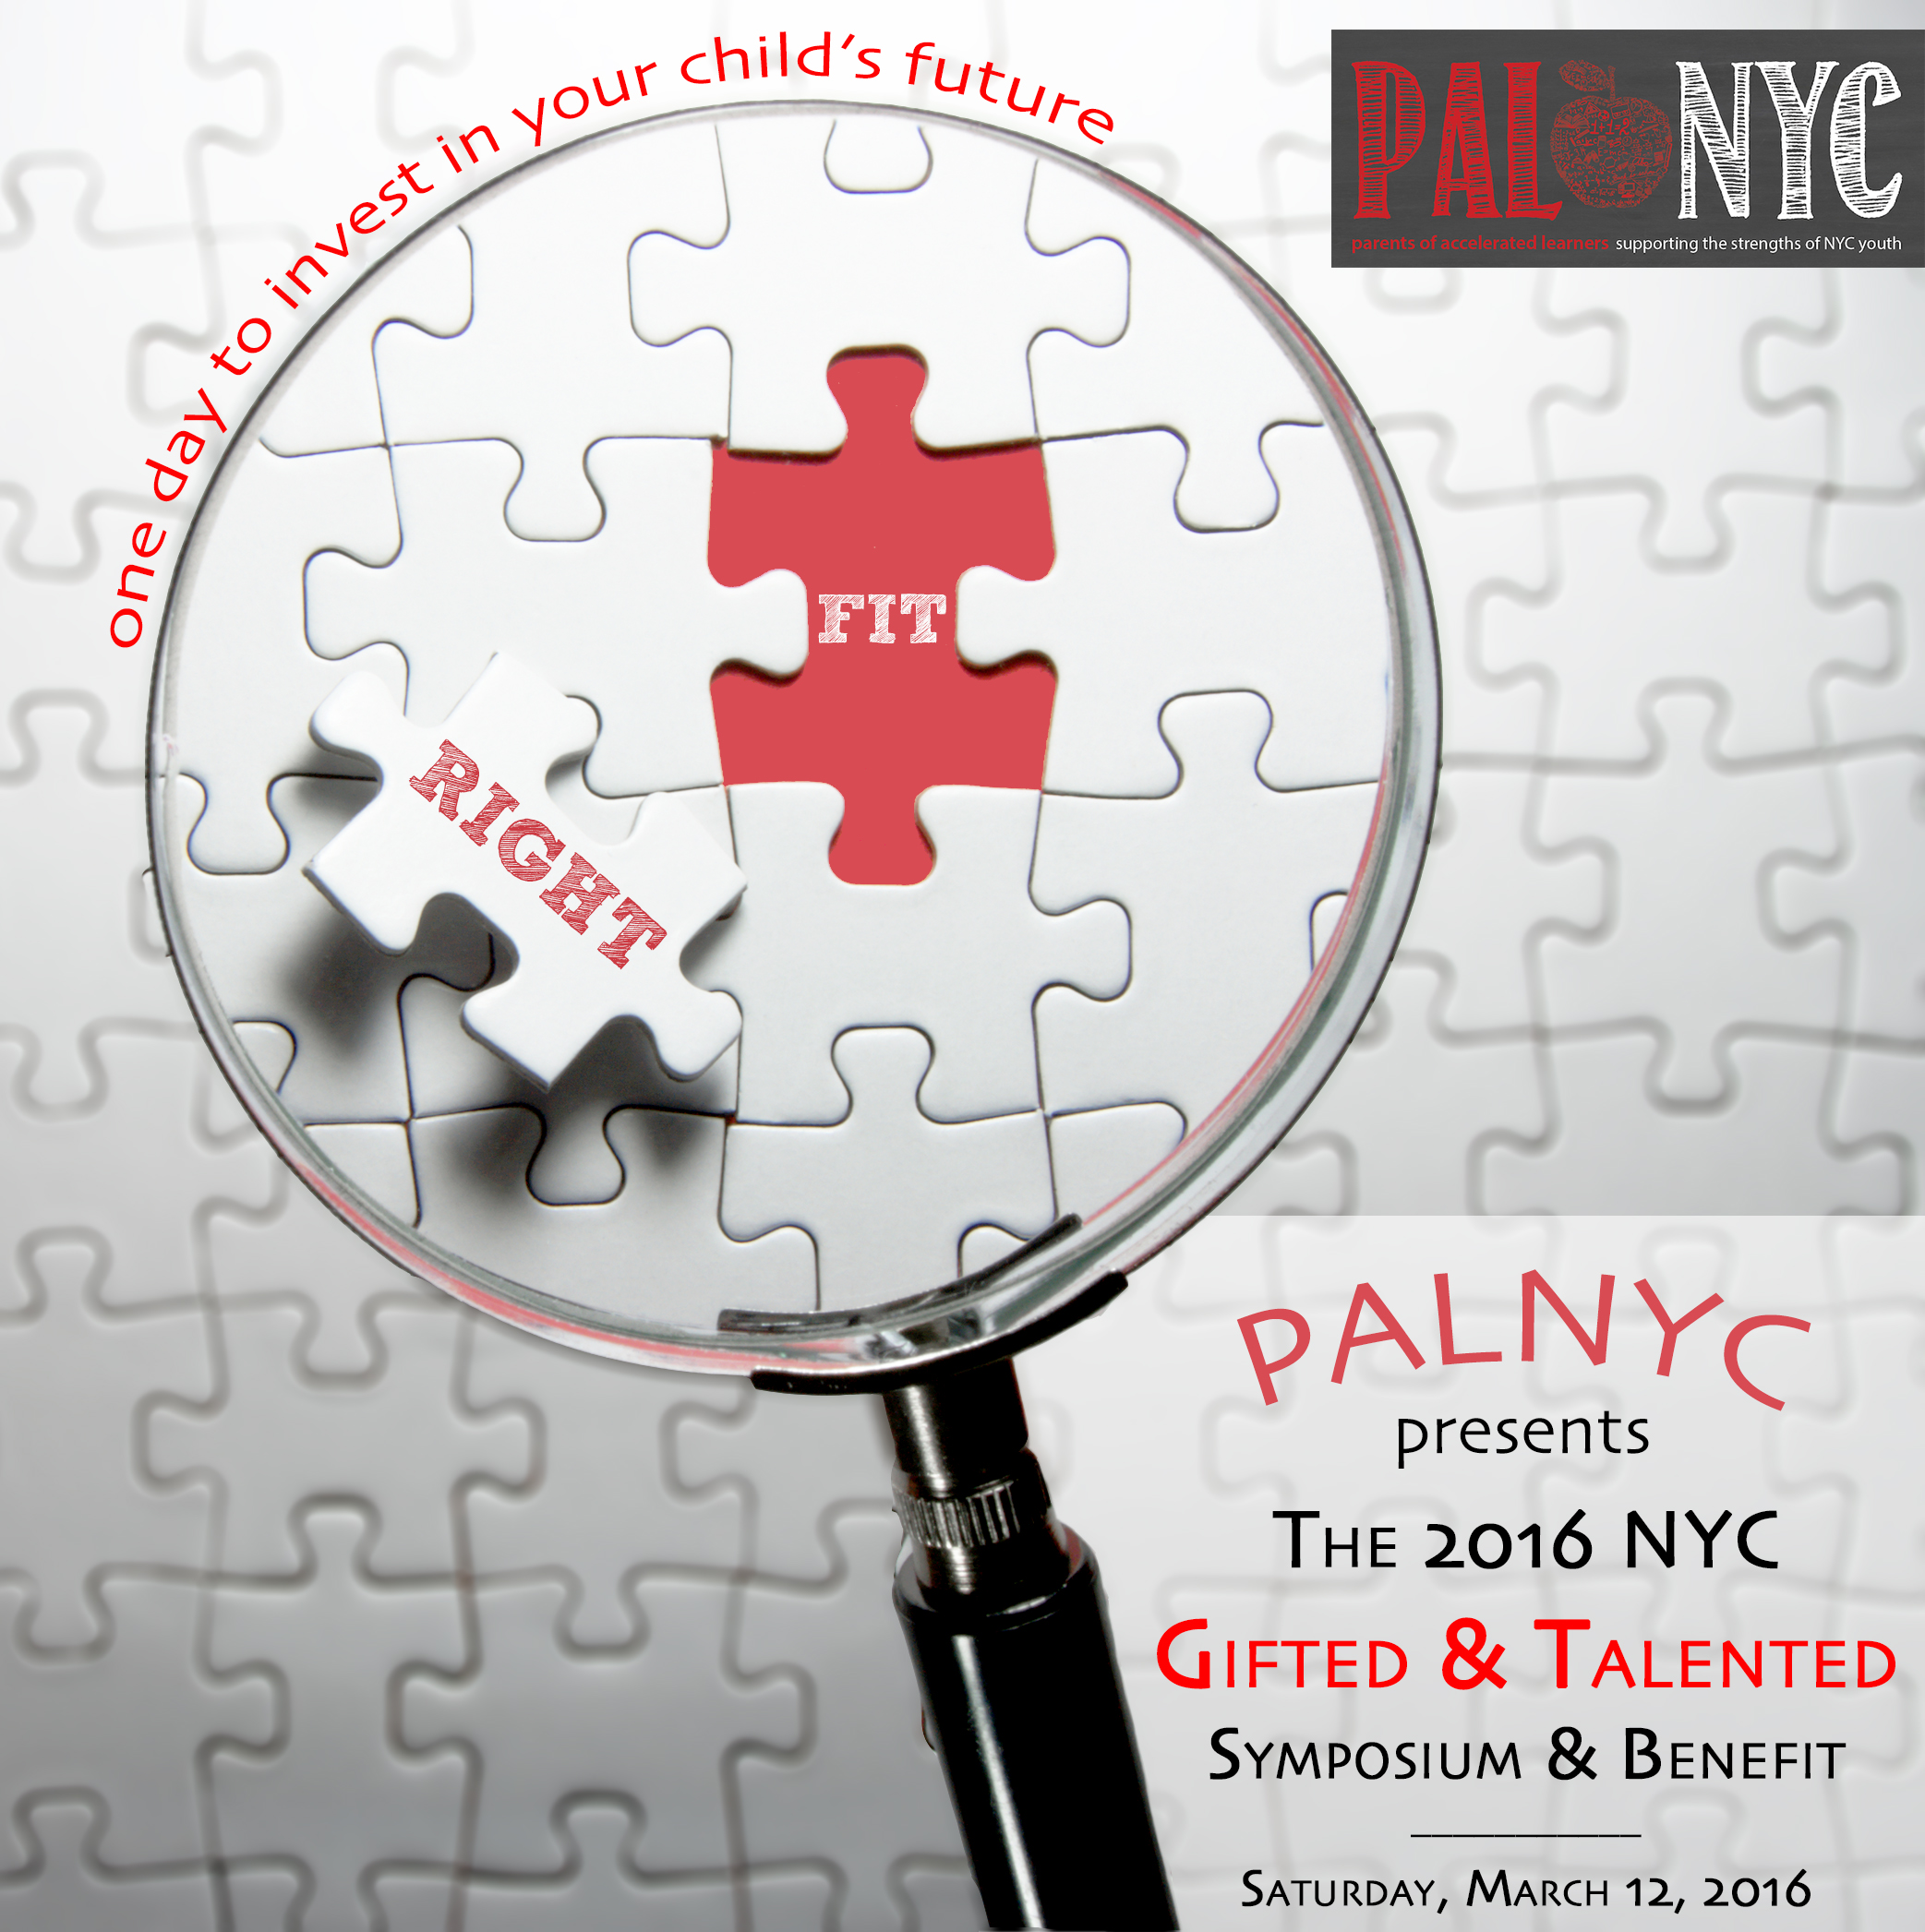 The 2016 NYC Gifted & Talented Symposium & Benefit